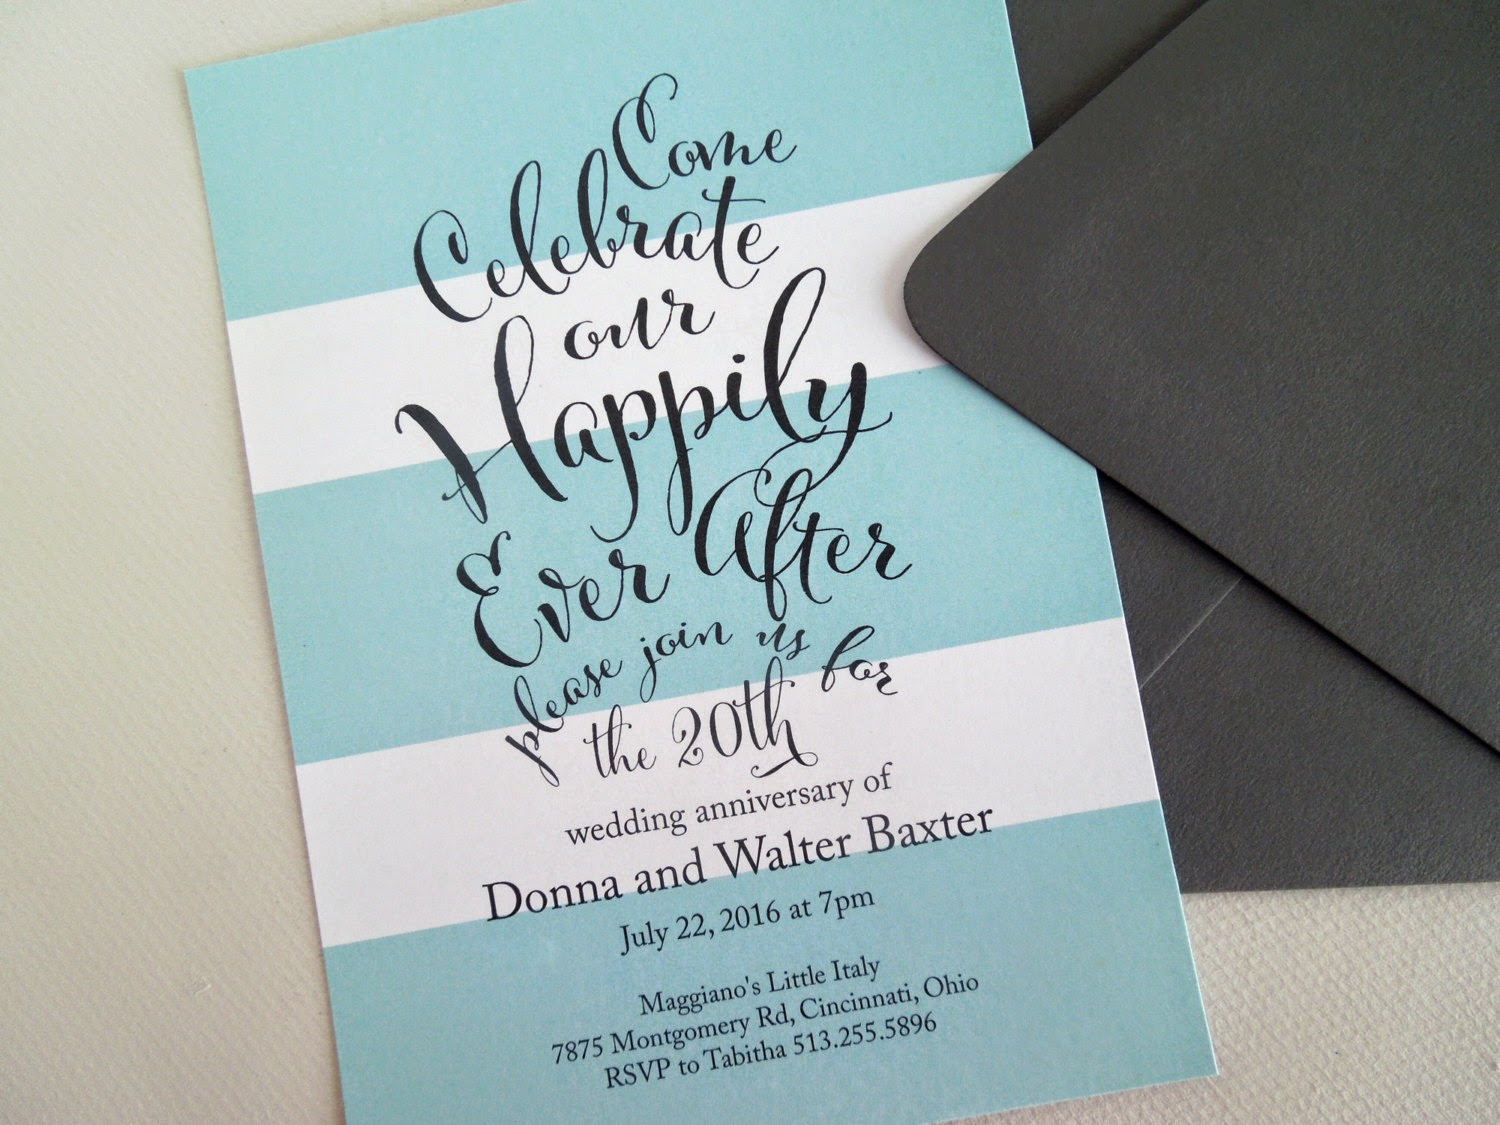 Happily Ever After Wedding Invitations: Invited Too